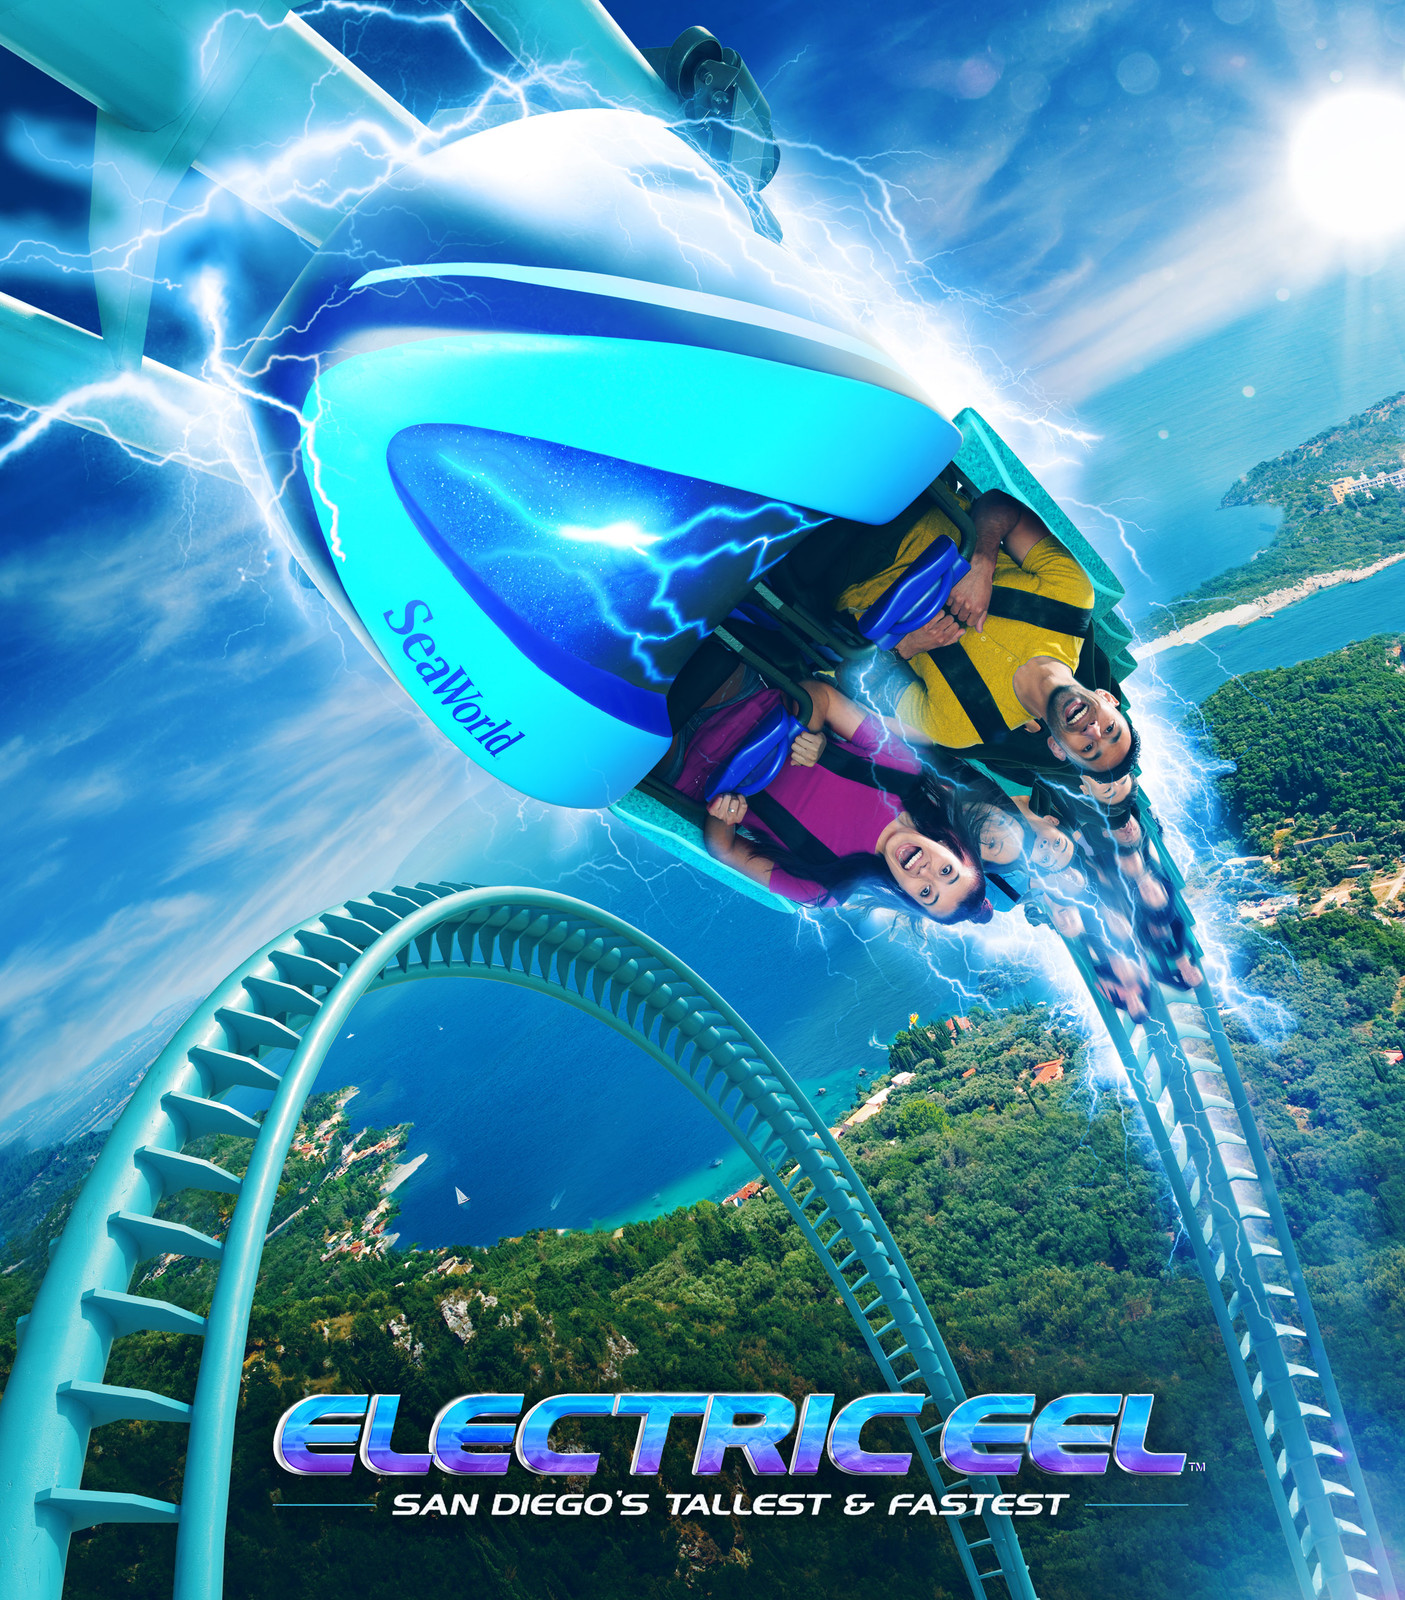 Seaworld: Electric Eel